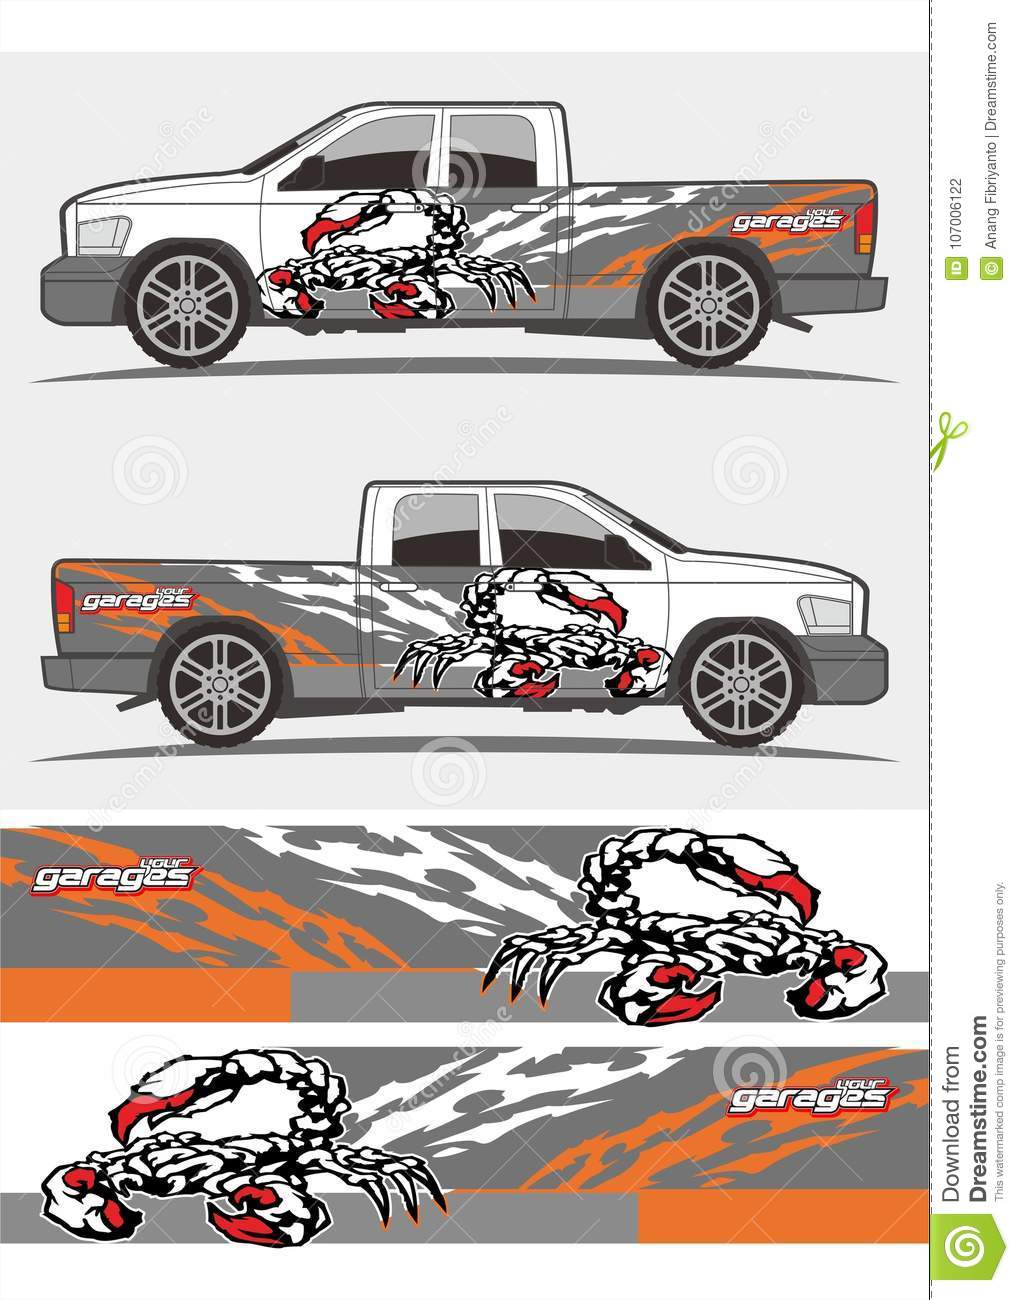 Truck and vehicle decal graphics kits design tribal graphics kits for truck and other vehicles decals and stickers scorpion decals for trucks